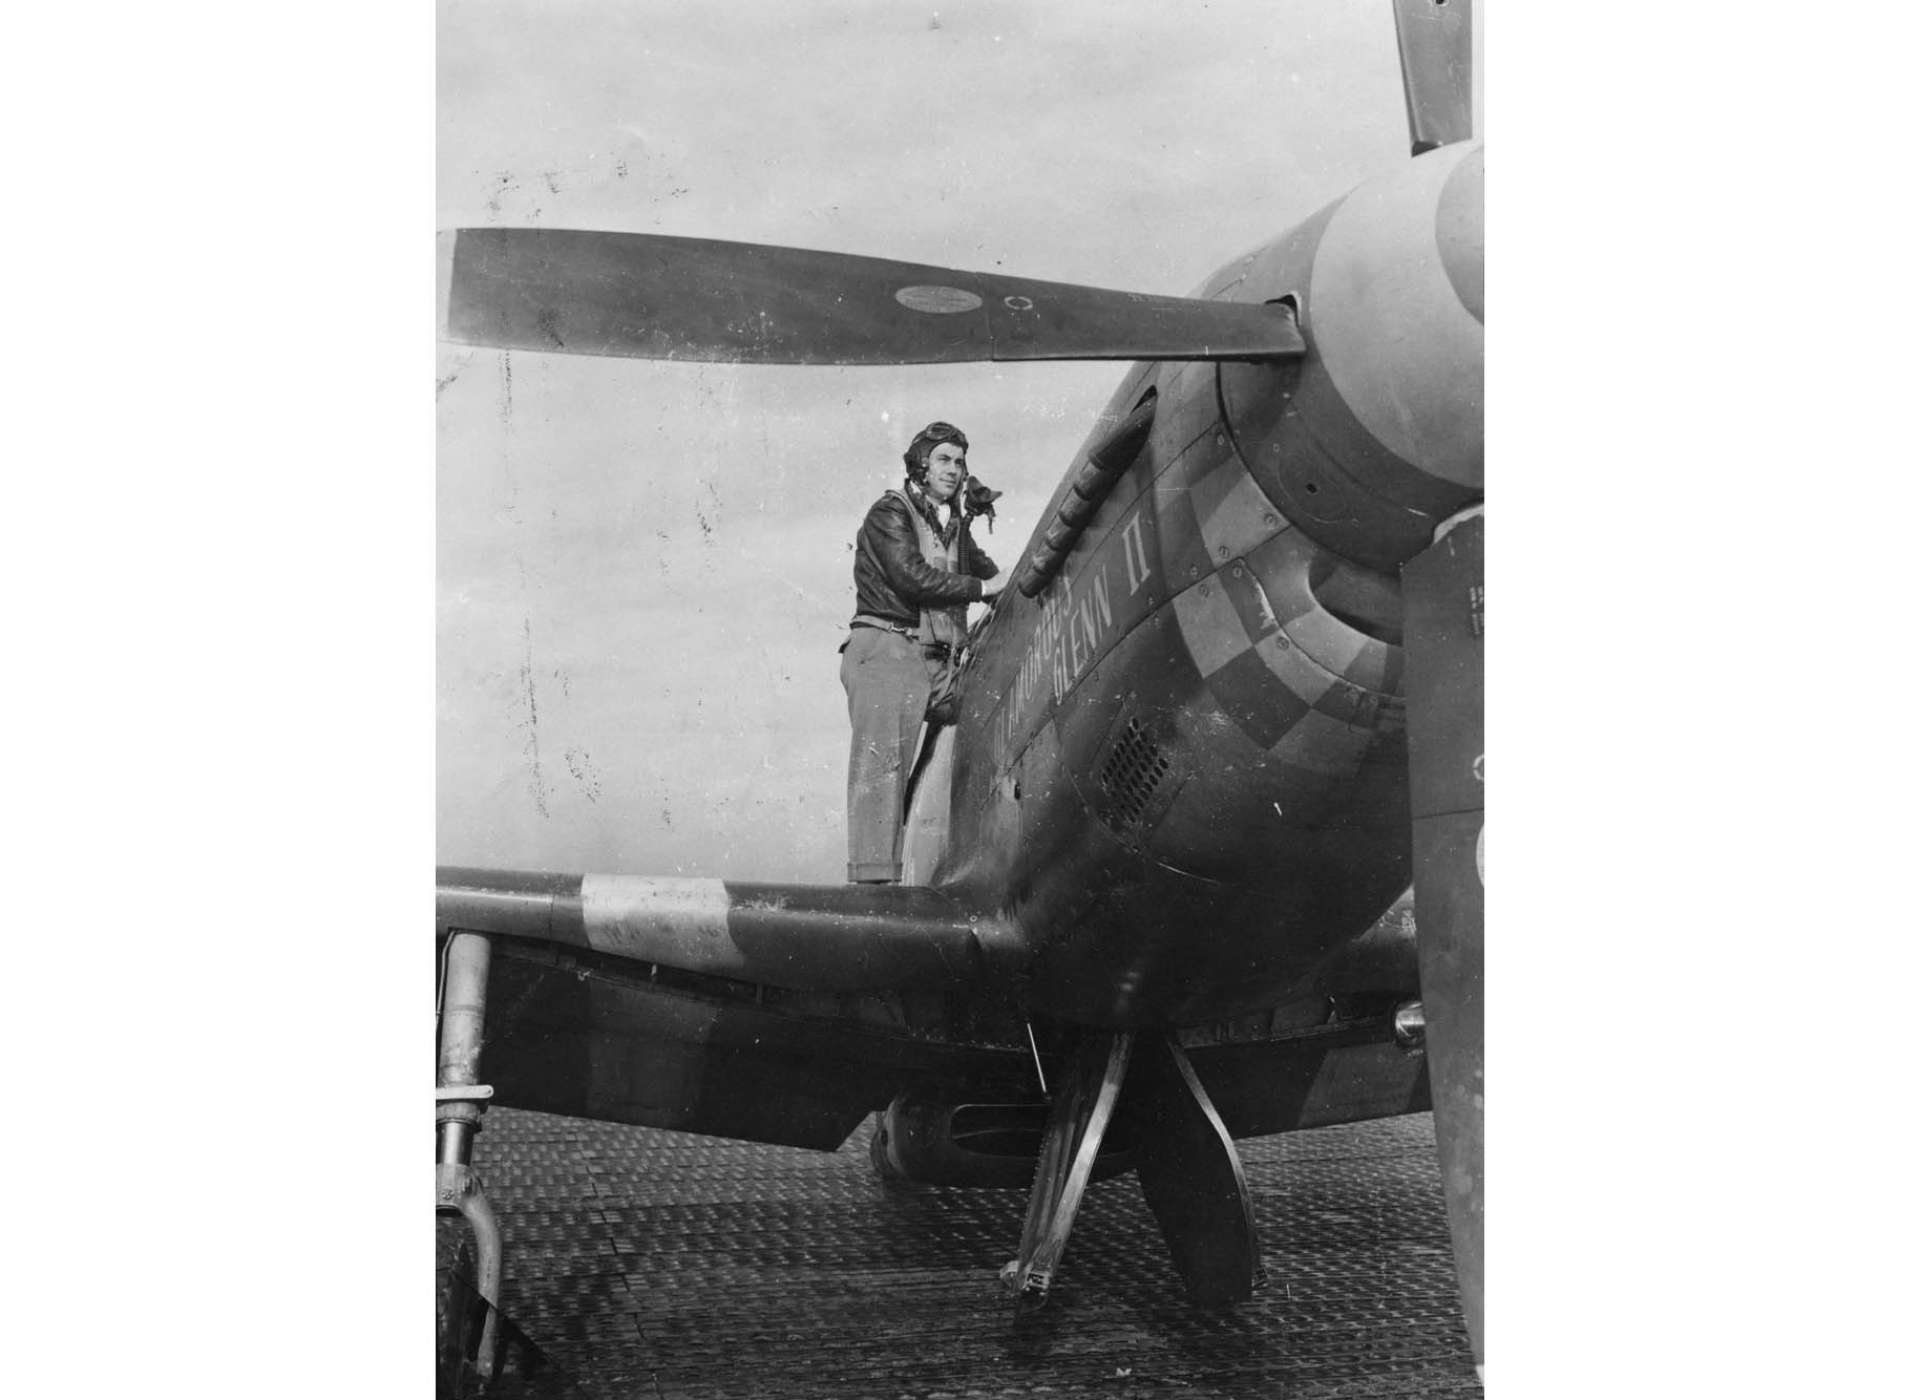 1st Lieutenant Charles E. Yeager with Glamorous Glenn II (Image: American Air Museum in Britain)